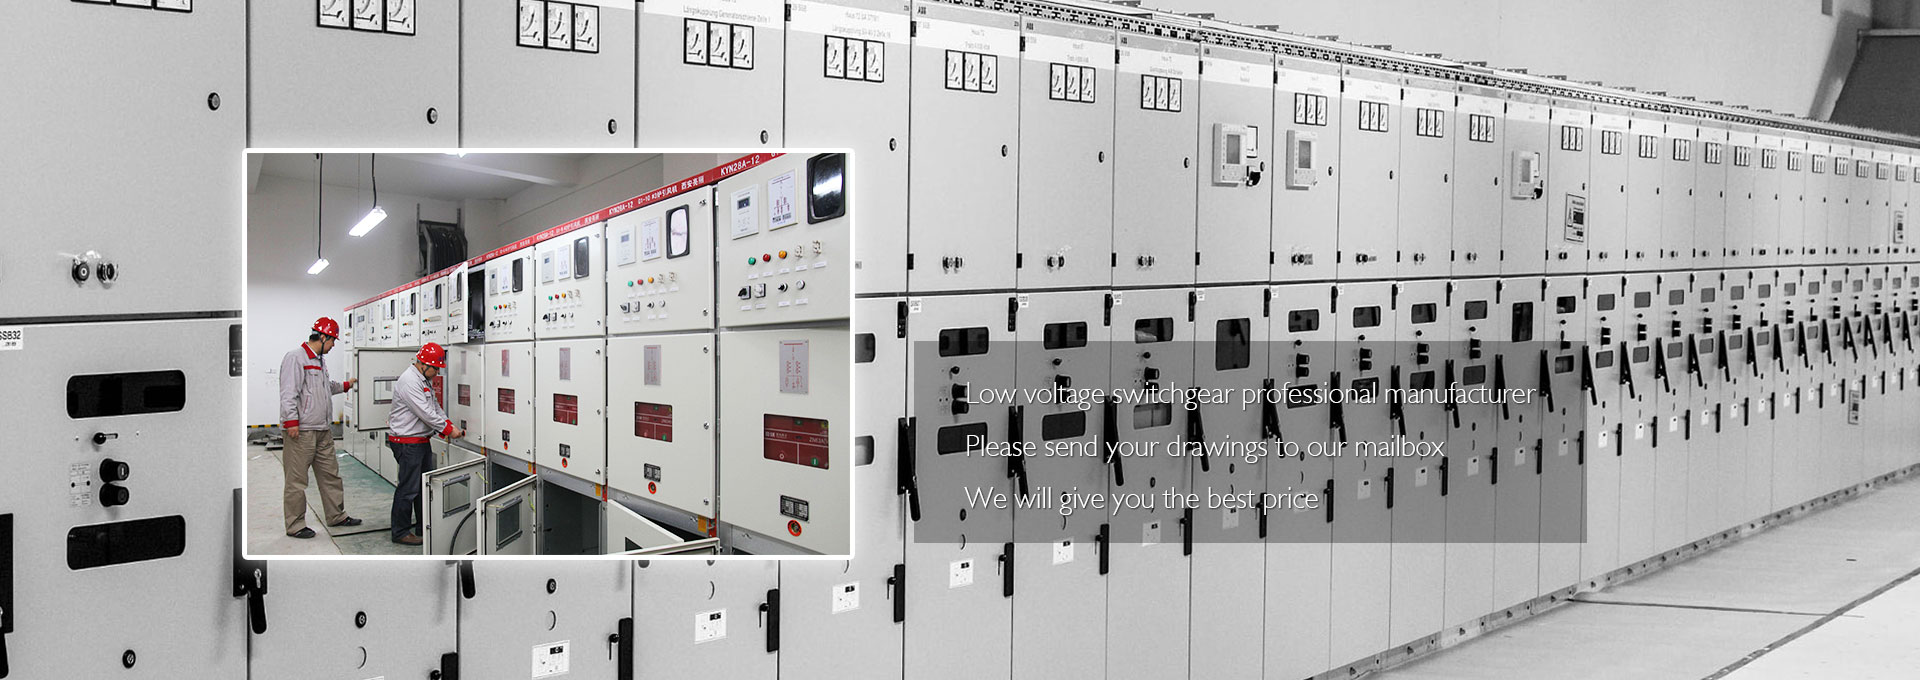 China Circuit Breaker Manufacturers Taixi Electric Coltd House Mcb High Quality